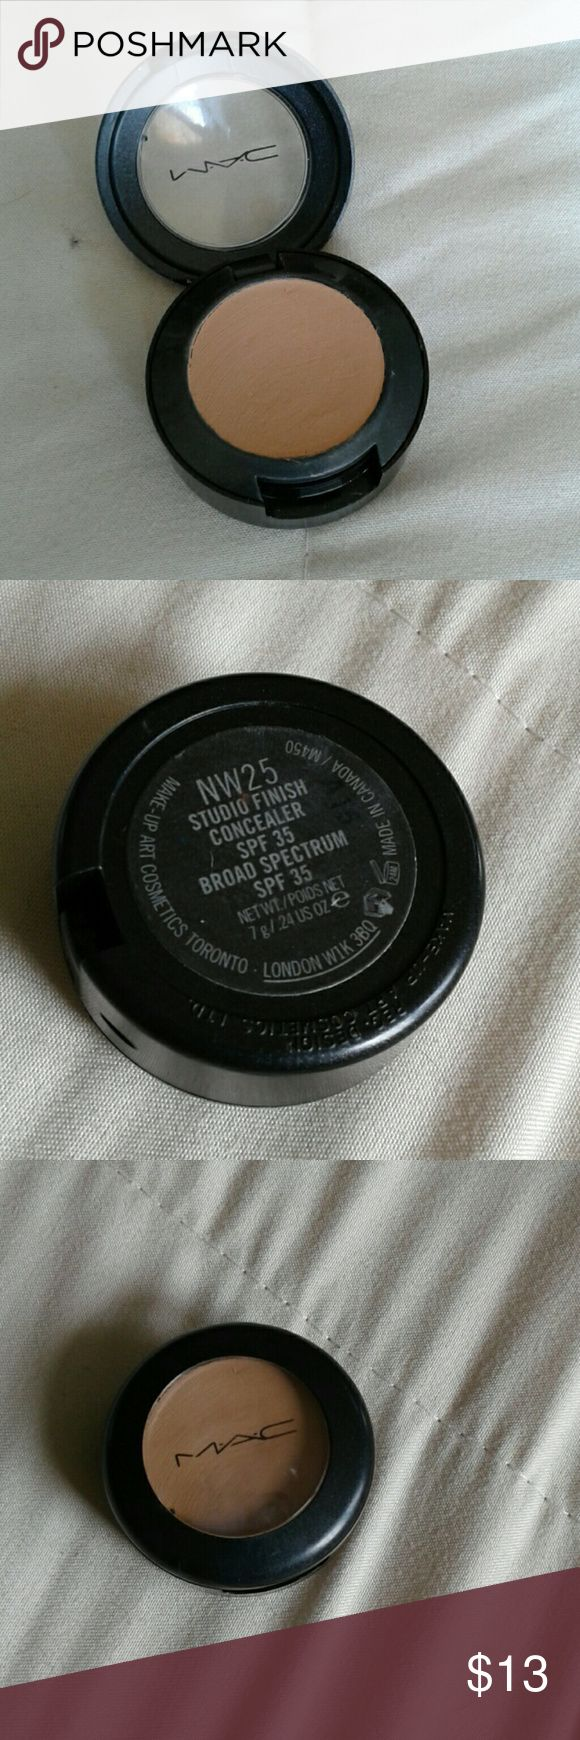 MAC studio finish concealer NW 25 Concealer, spf 35, NW 25. Its a darker color than my skin is so I never used it. It is brand new but sampled once to see how it would look on my skin. .24 oz MAC Cosmetics Makeup Concealer